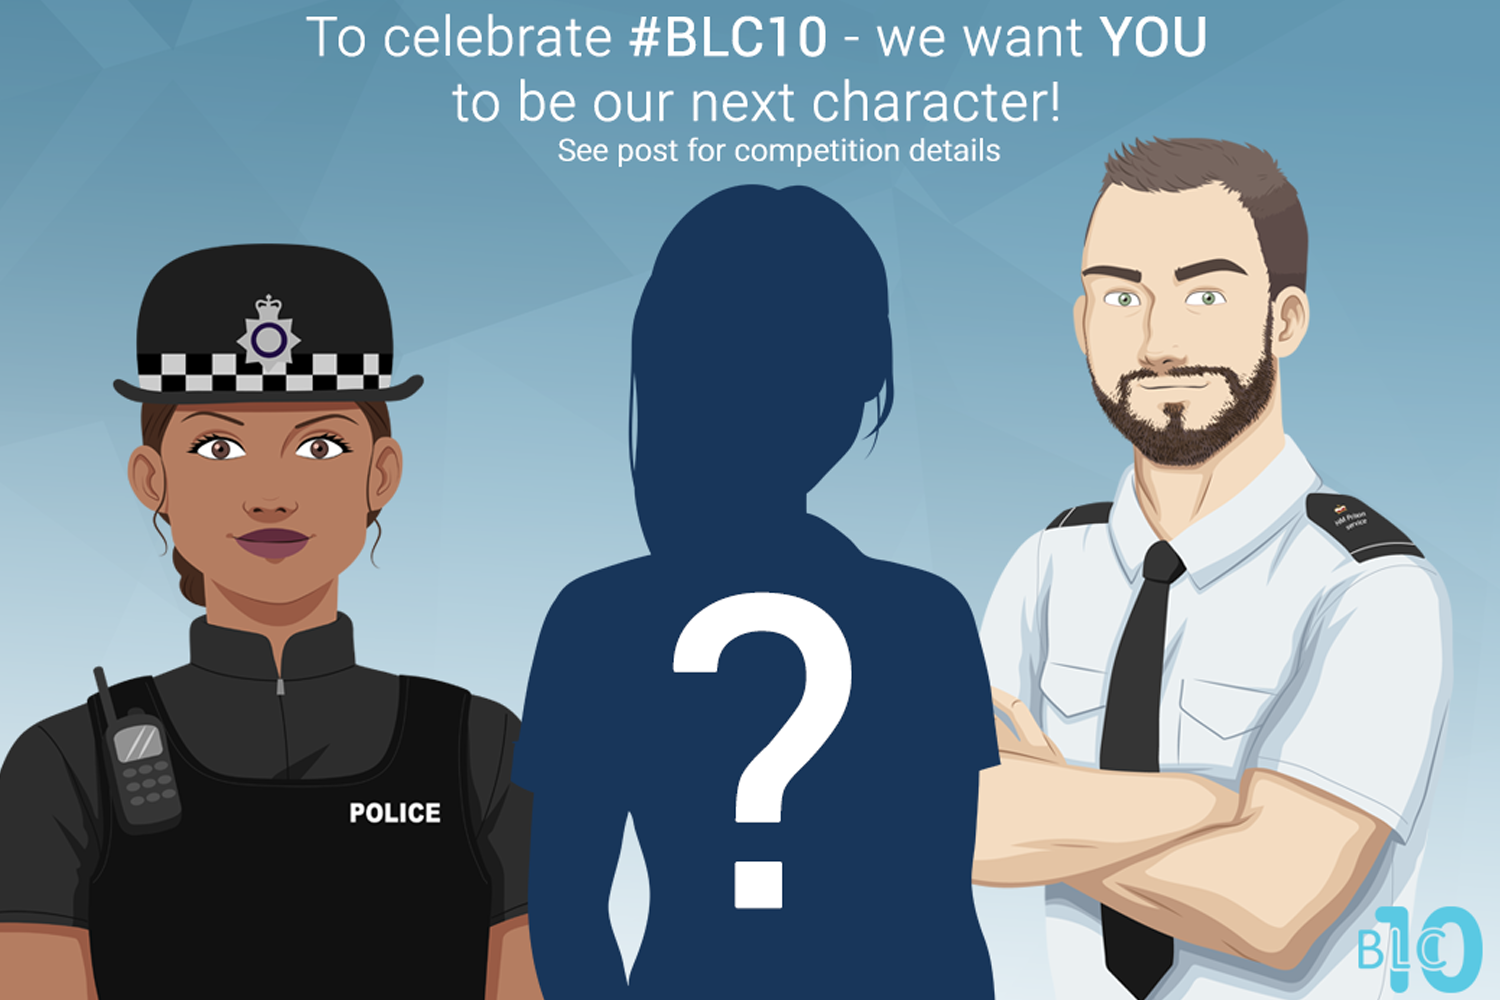 #BLC10 Competition - be the next BLC Character!